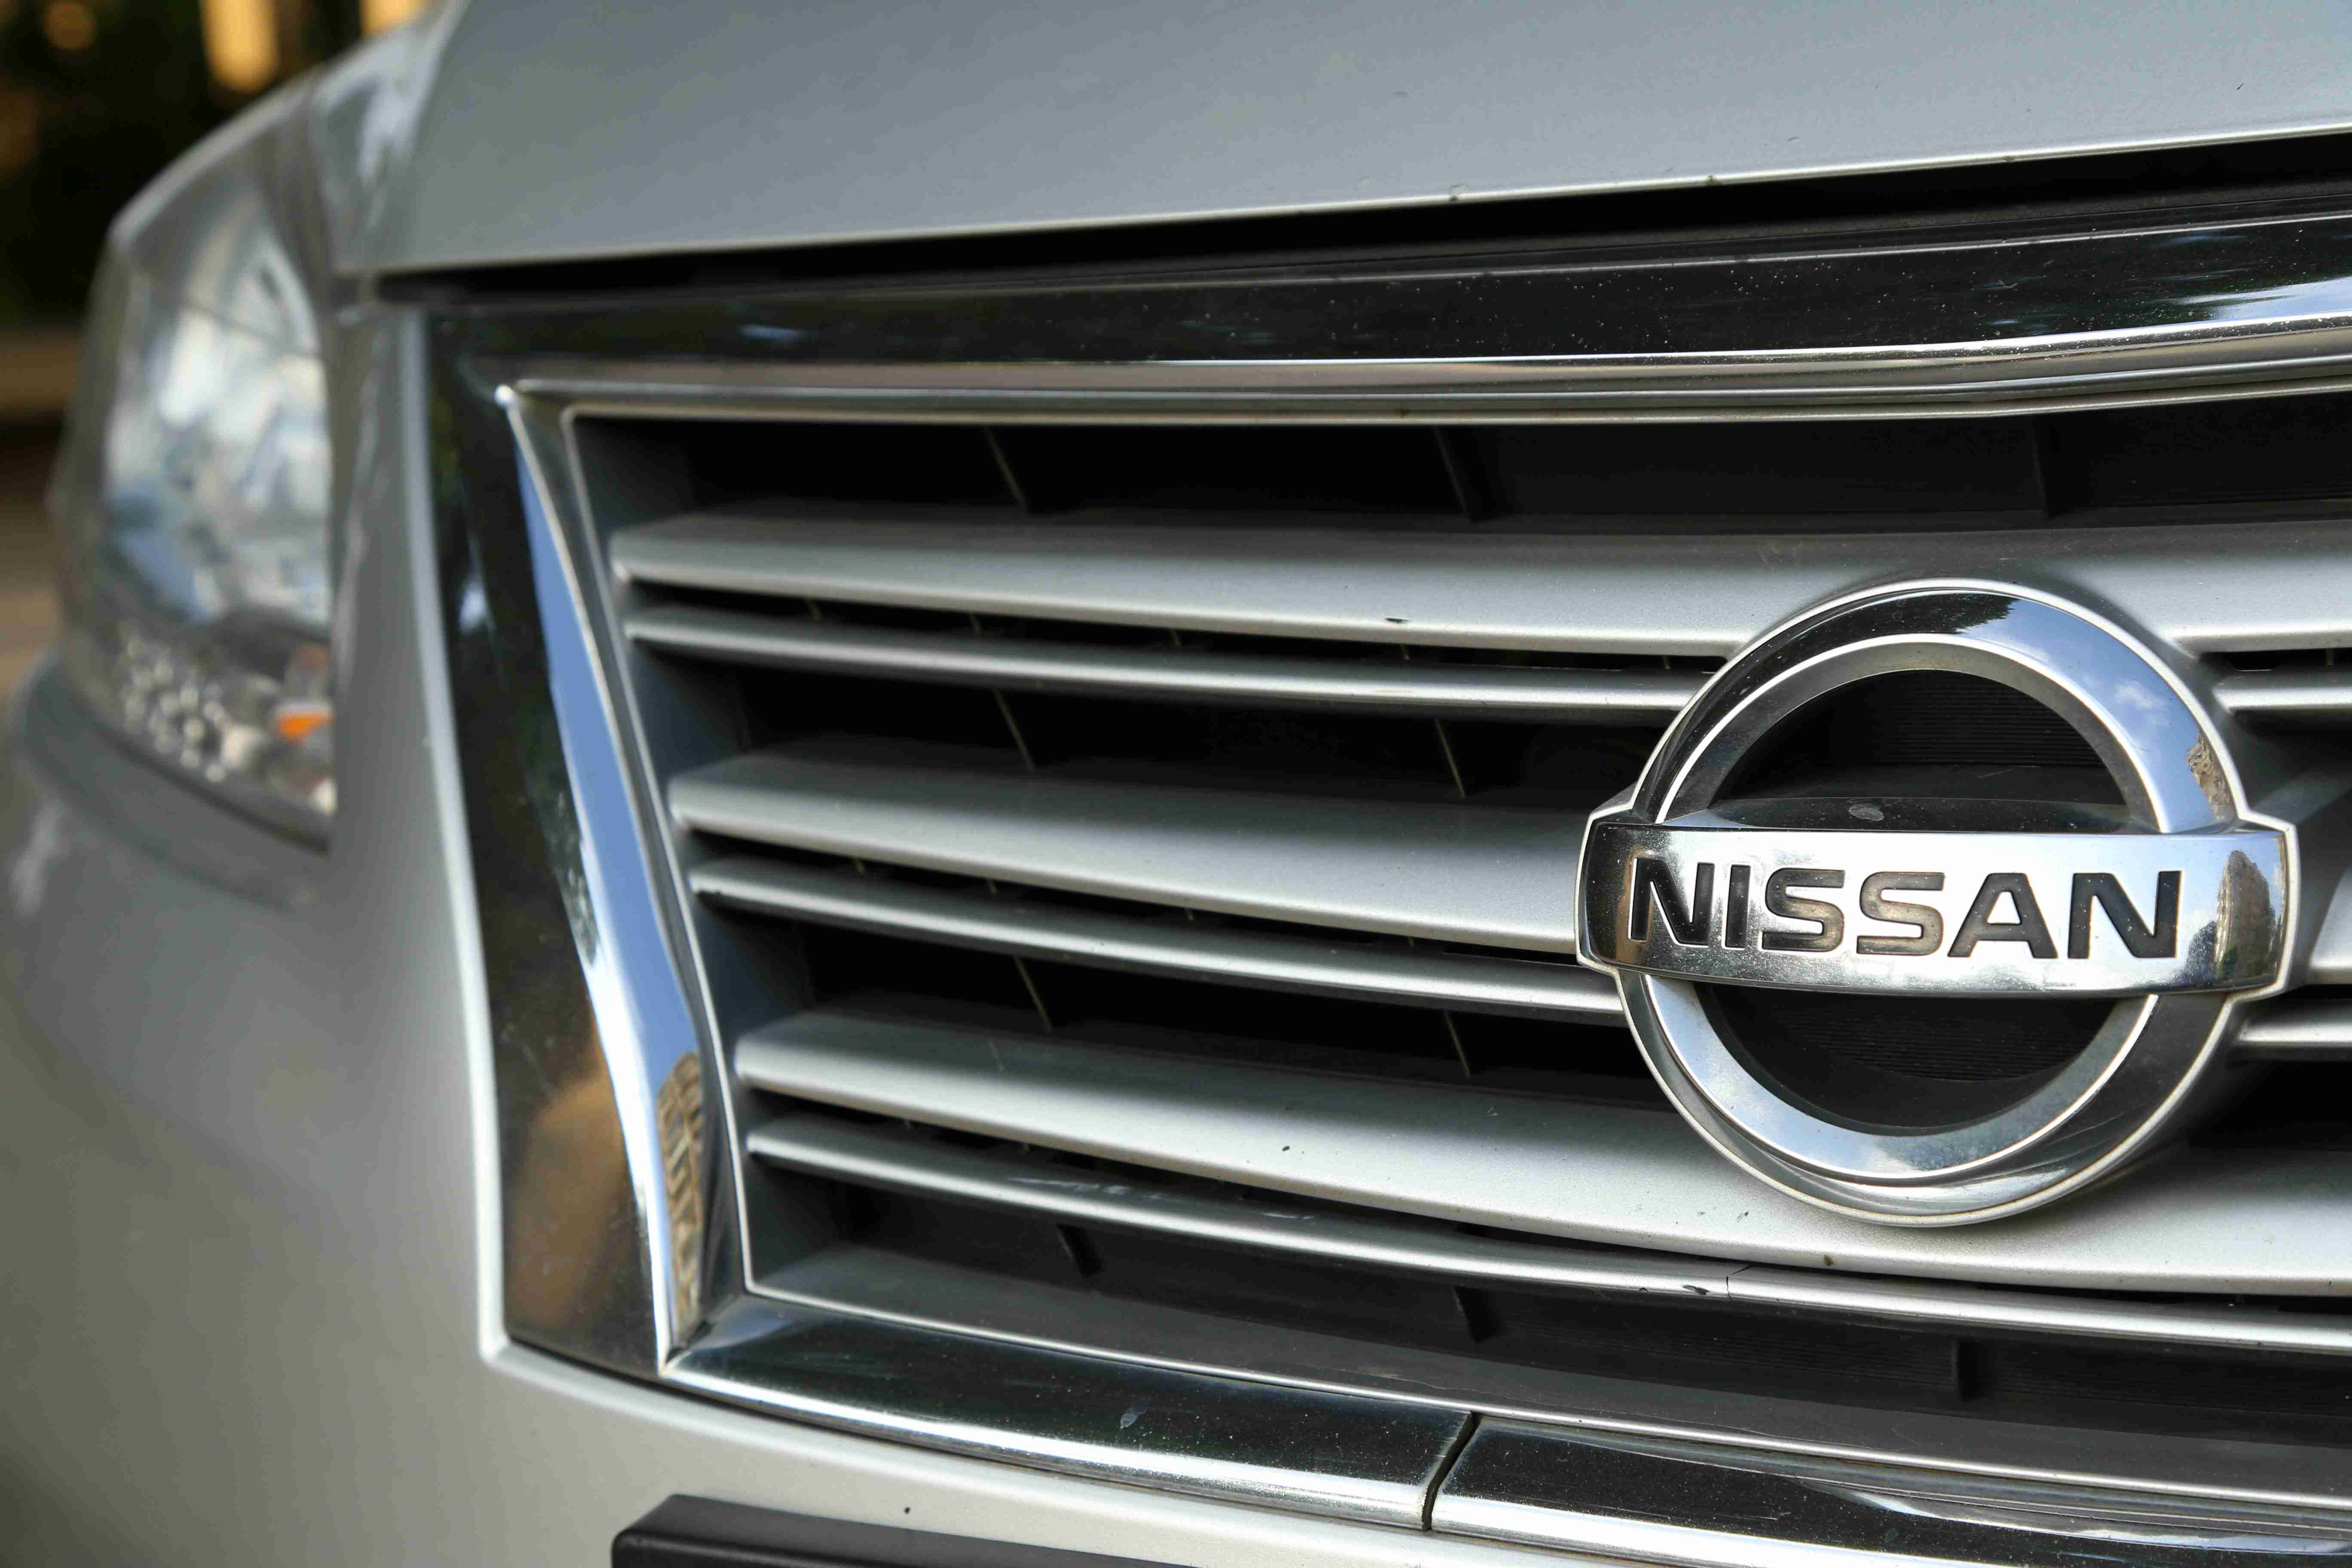 Daily News Egypt Test Drives Nissan Sentra Control Ac March